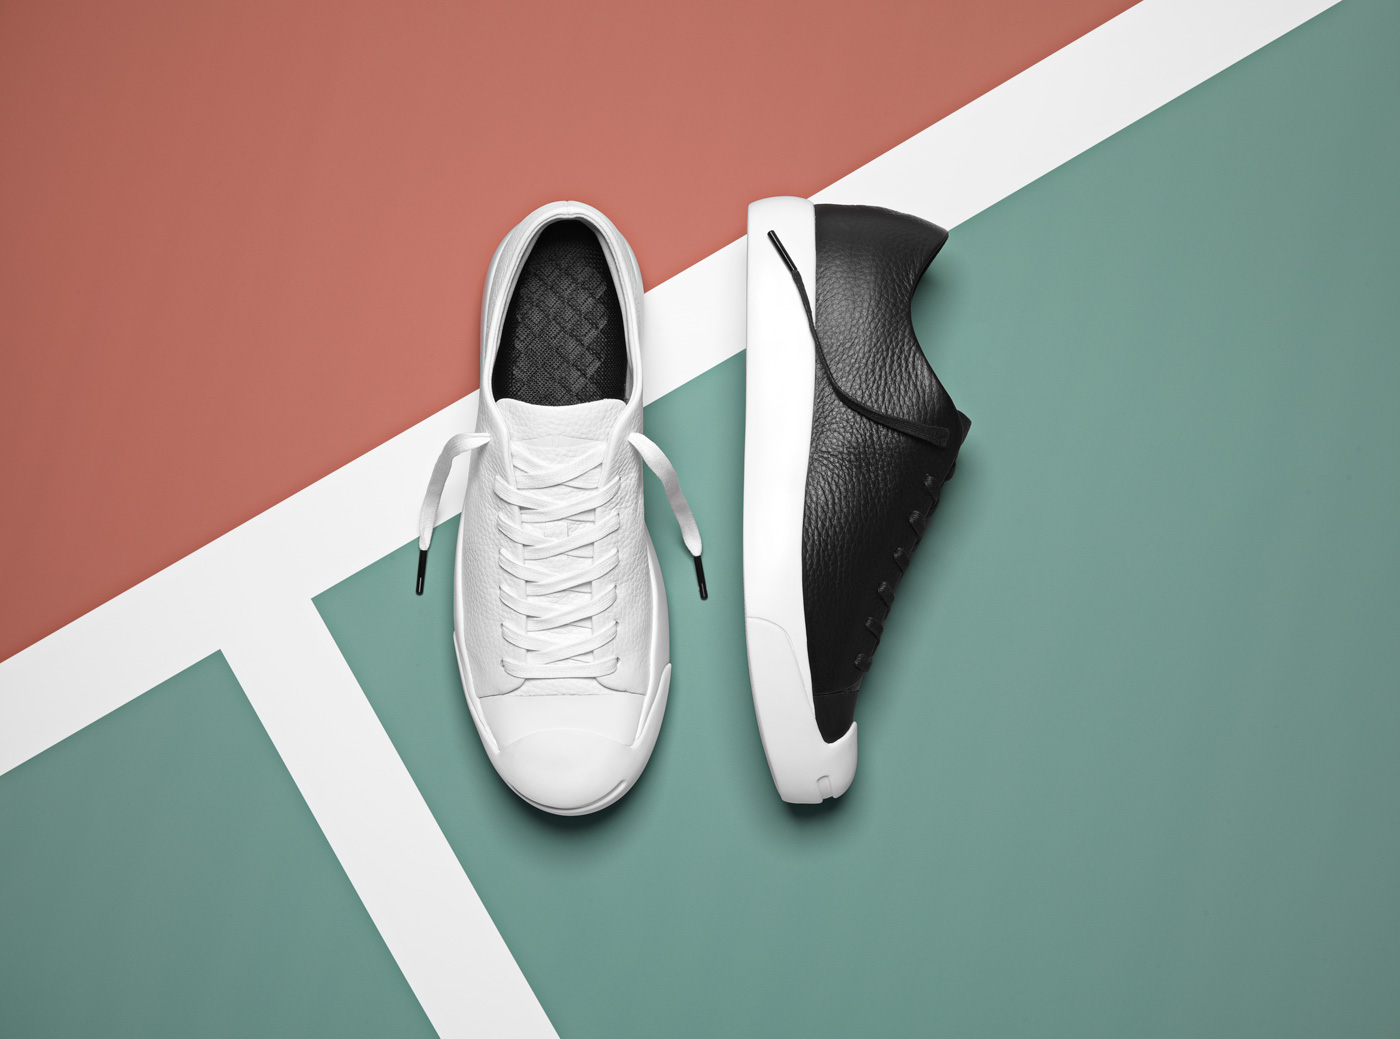 Converse-Jack-Purcell-Modern-Leather-Group-NTD-4,680-(4)